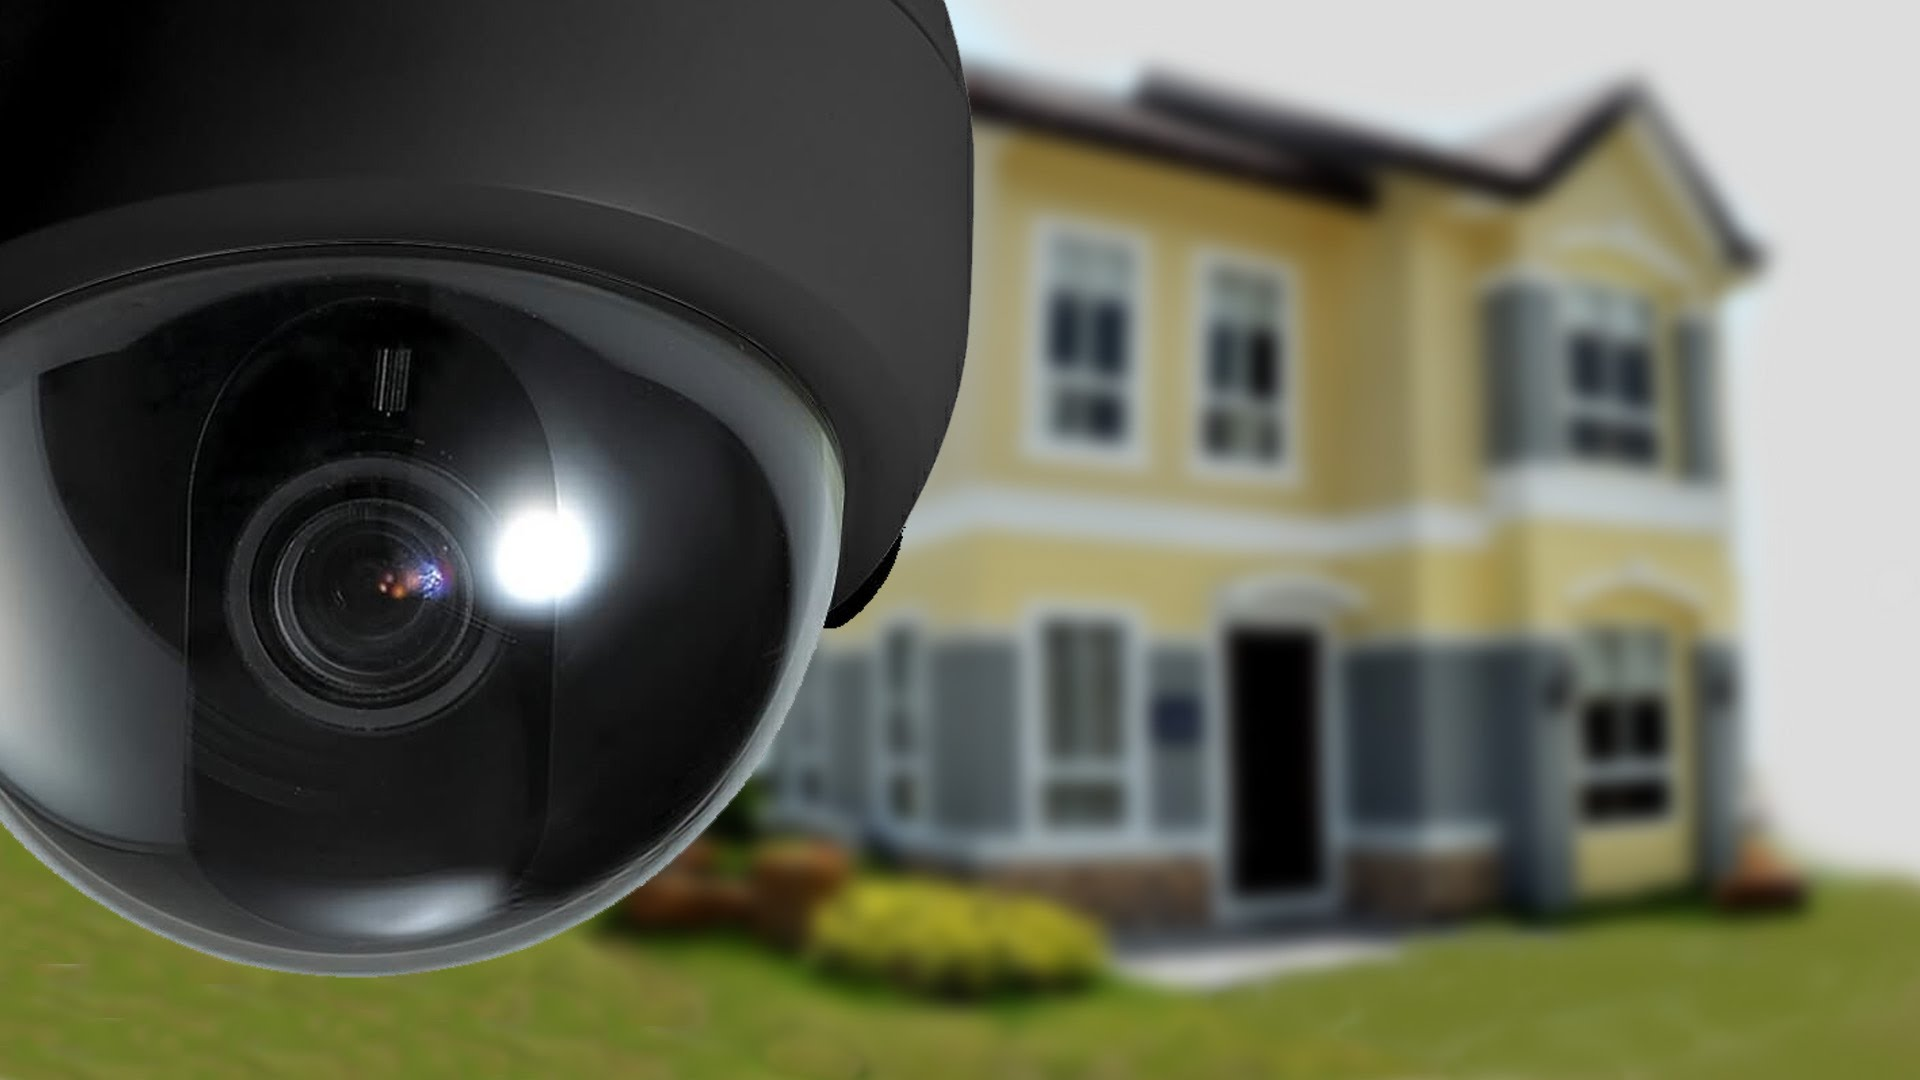 High definition security cameras, hd security cameras, analog cabling, analog security cameras, high definition surveillance, hd surveillance, http://screamingwifi.com, wifi, wi-fi, internet service, Home audio system, multi-room music system, sonos, casatunes, home speakers, house speakers, house sound system, http://automated-lifestyles.com, automated lifestyles, automated lifestyles Moscow pa, automated lifestyles Pennsylvania, home automation, home monitoring, automated home, automatic home, smart home, automatic window blinds, automatic window shades, surveillance camera, home security, business security, office security system, security system, security camera, home theater, home theater design, home theatre, home network, home control, control home ipad, control home iphone, home speakers, Lutron lights, Lutron lighting, Lighting control, automatic lighting, Multi-room music, Whole house music, Speakers, Audio visual, room music, Meeting room av, Meeting room audio visual, meeting room projector, meeting room screen, office projector, conference room, boardroom, automated meeting room, automatic meeting room, Window candles